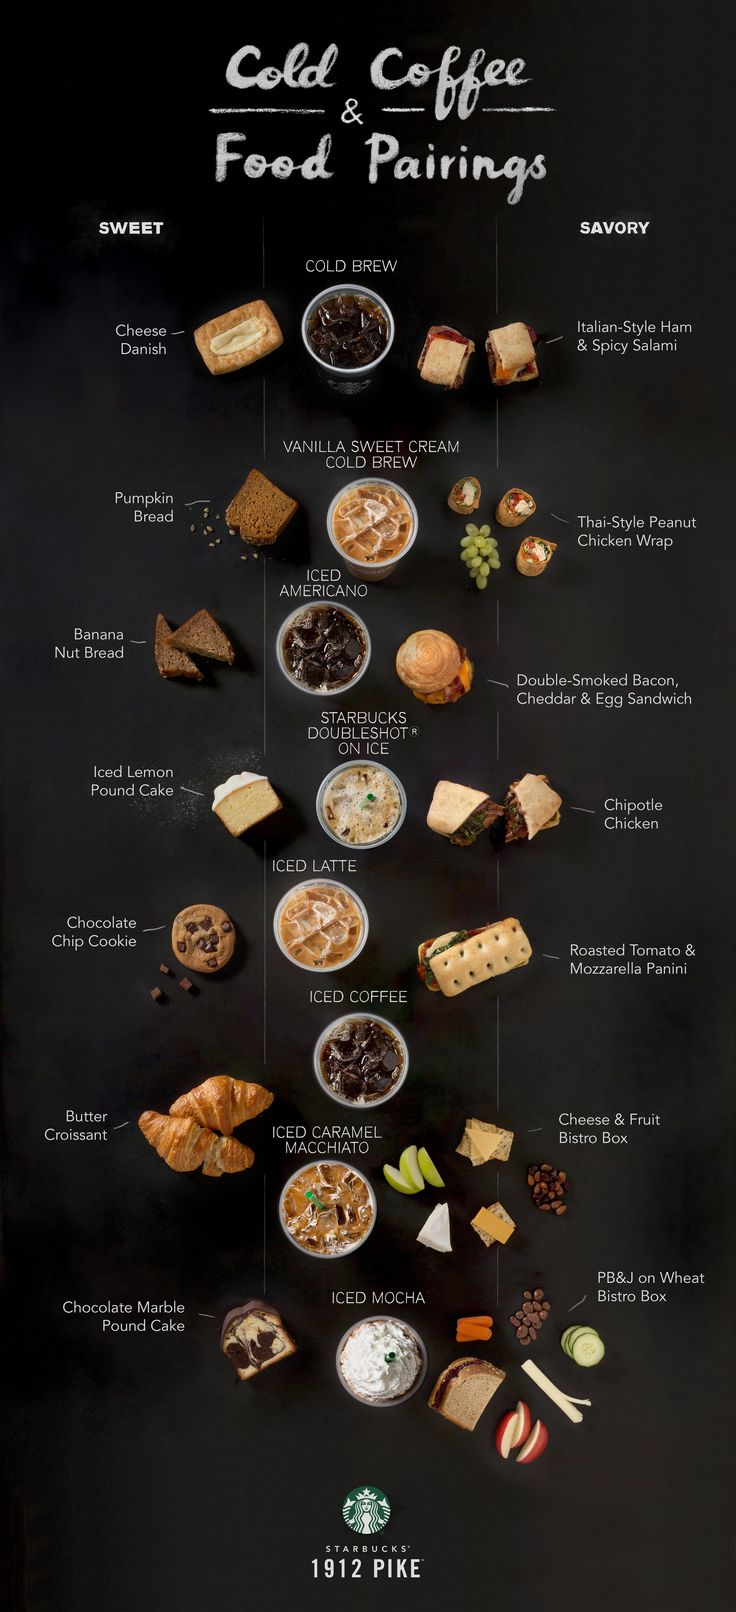 The perfect food pairings for your favorite Starbucks cold coffee. Now all you have to do is decide: sweet or savory?